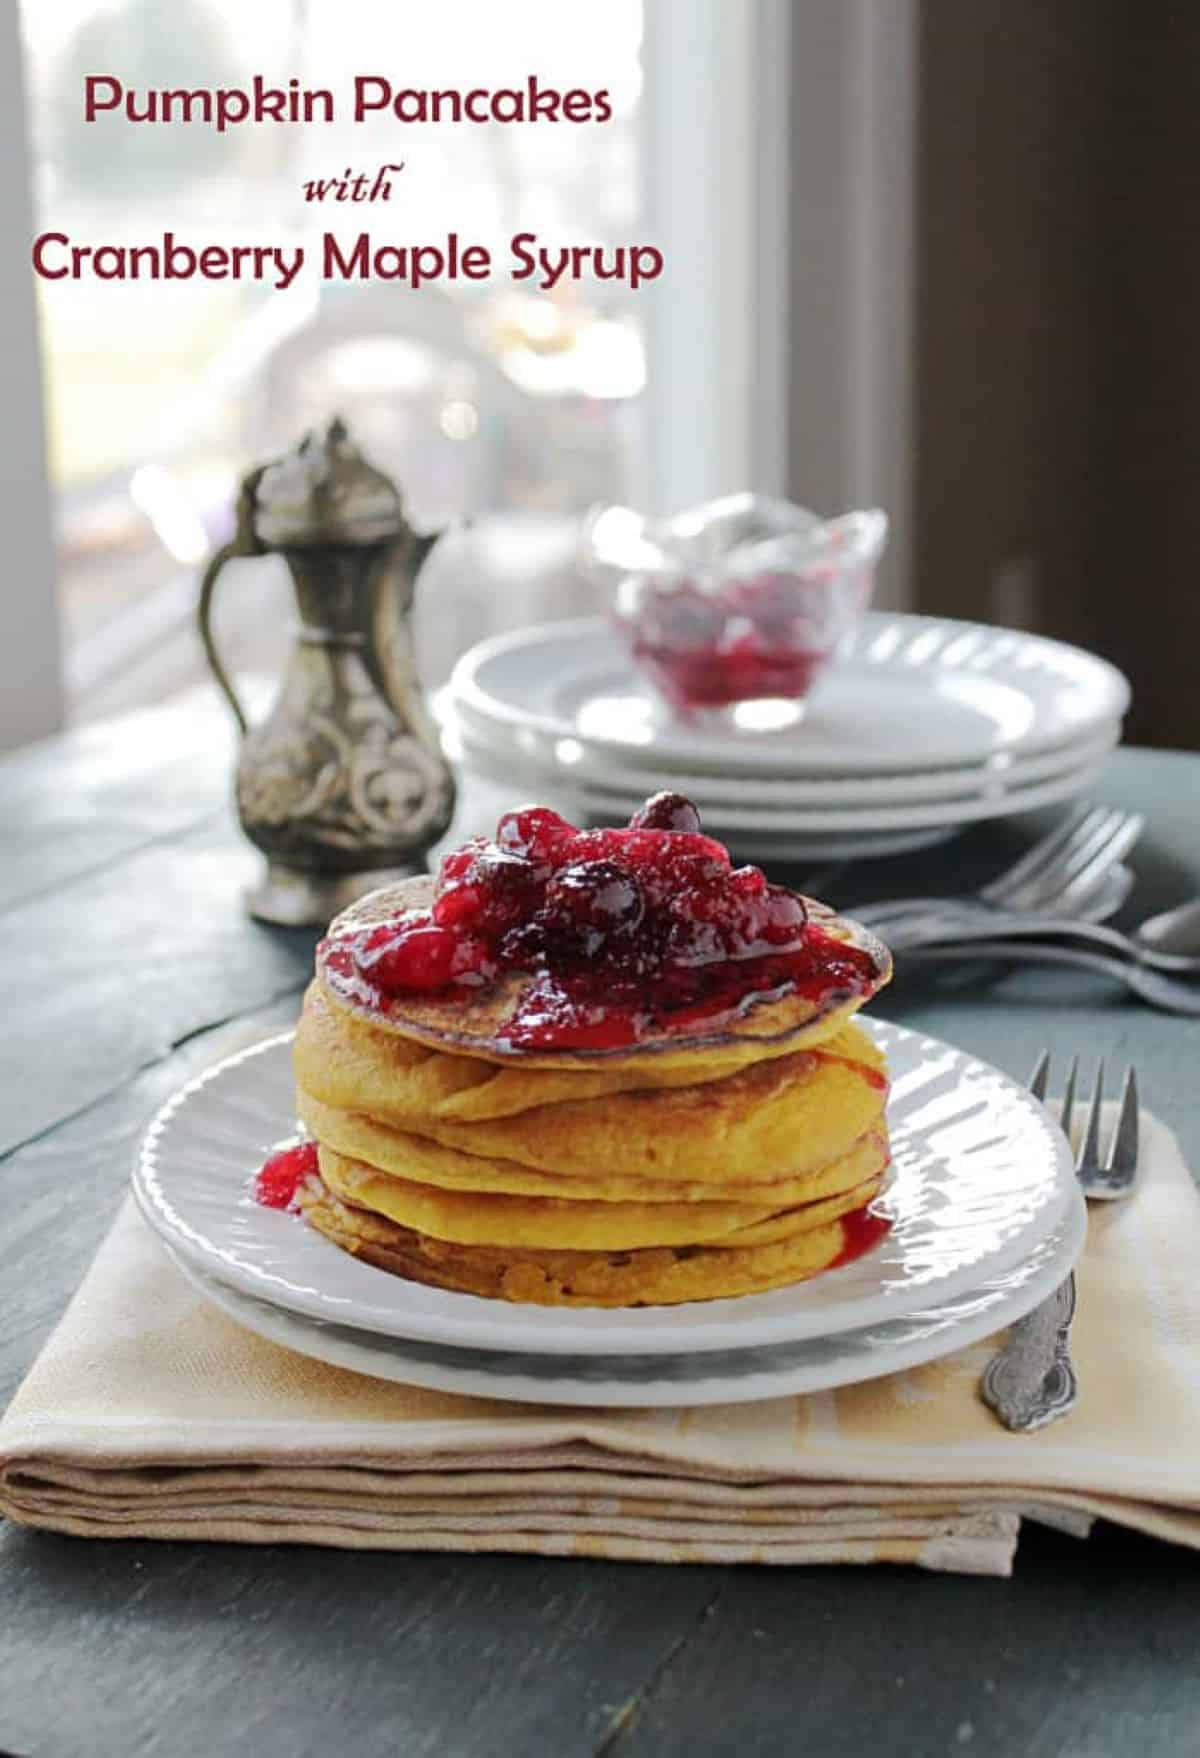 A plate of golden pancakes topped with cranberry syrup and fresh cranberry sauce.